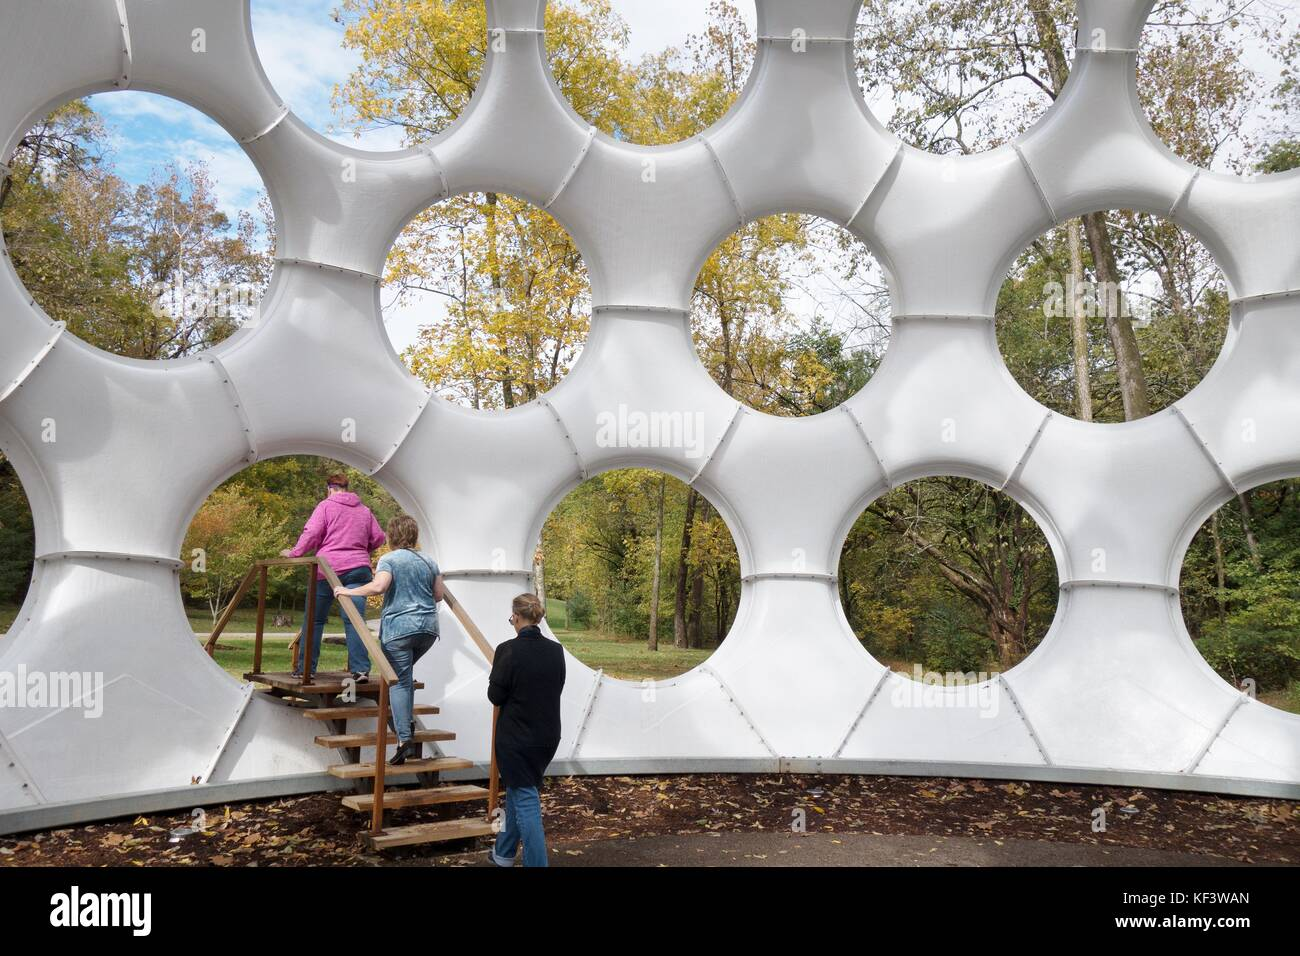 People walking out of The Fly's Eye Dome, designed by Buckminster Fuller, at Crystal Bridges art museum in Bentonville, - Stock Image